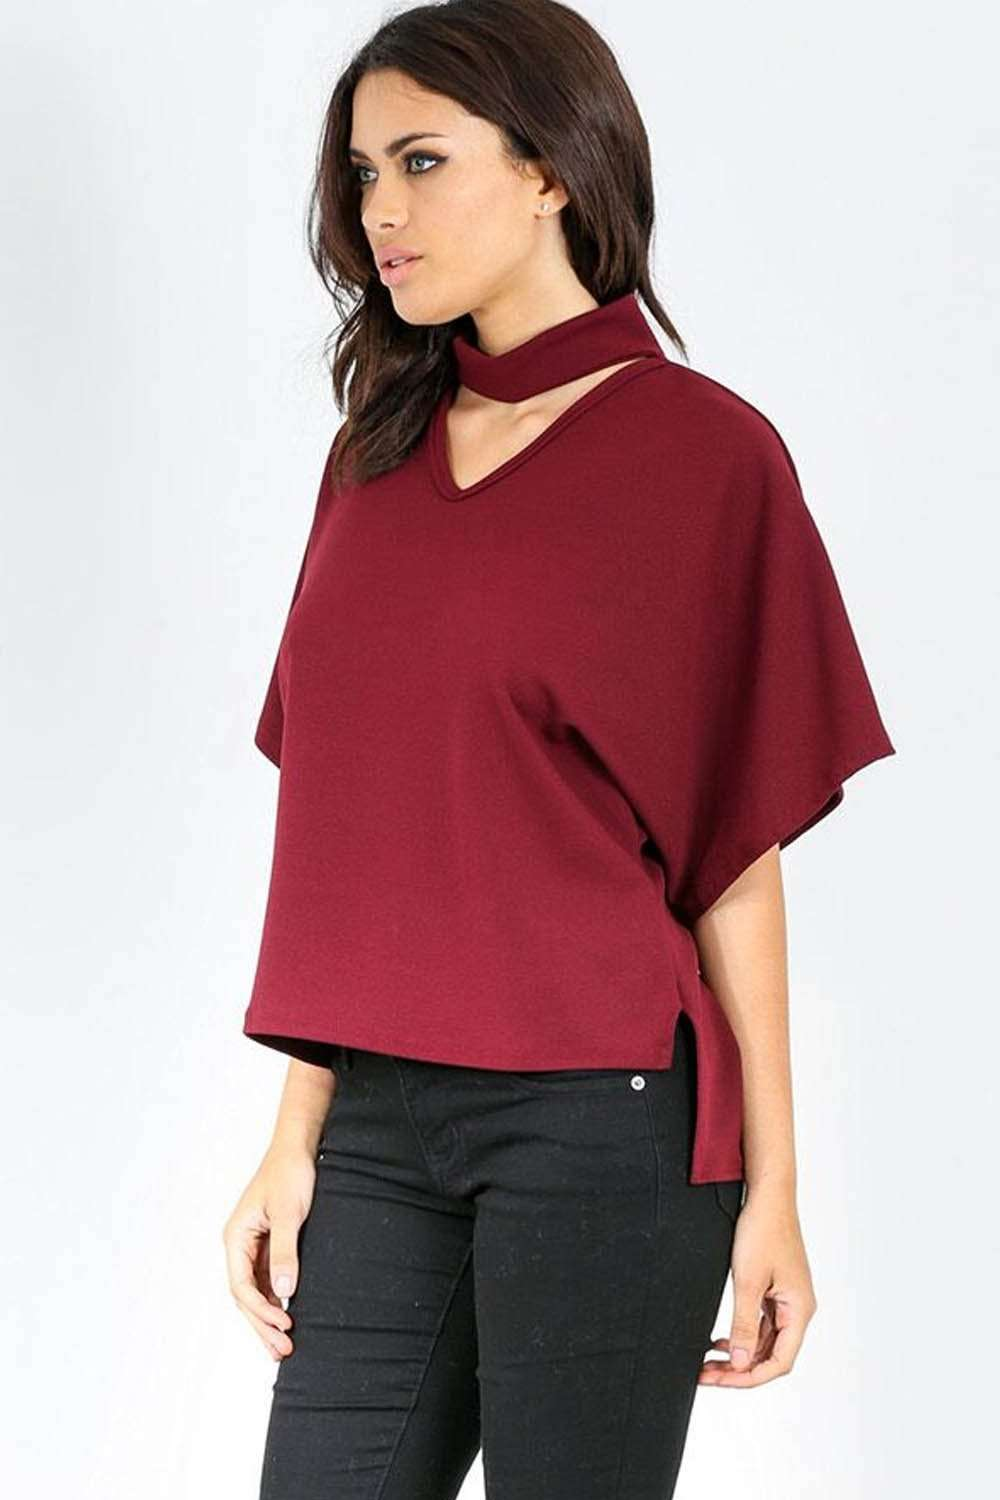 Tanaya Choker Neck Baggy Bat Wing Top - bejealous-com